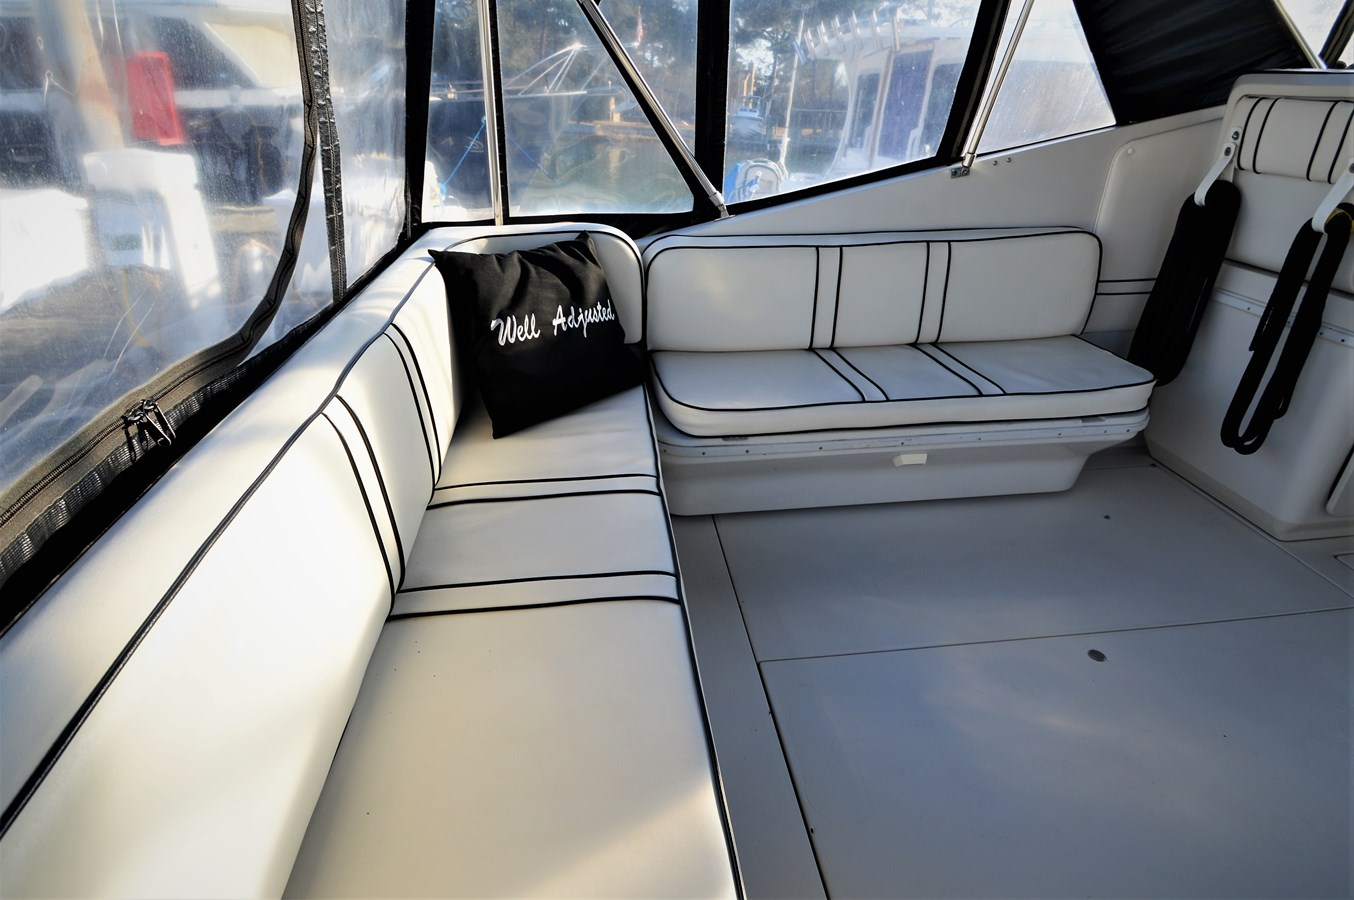 L Shaped Seating - 32 WELLCRAFT For Sale